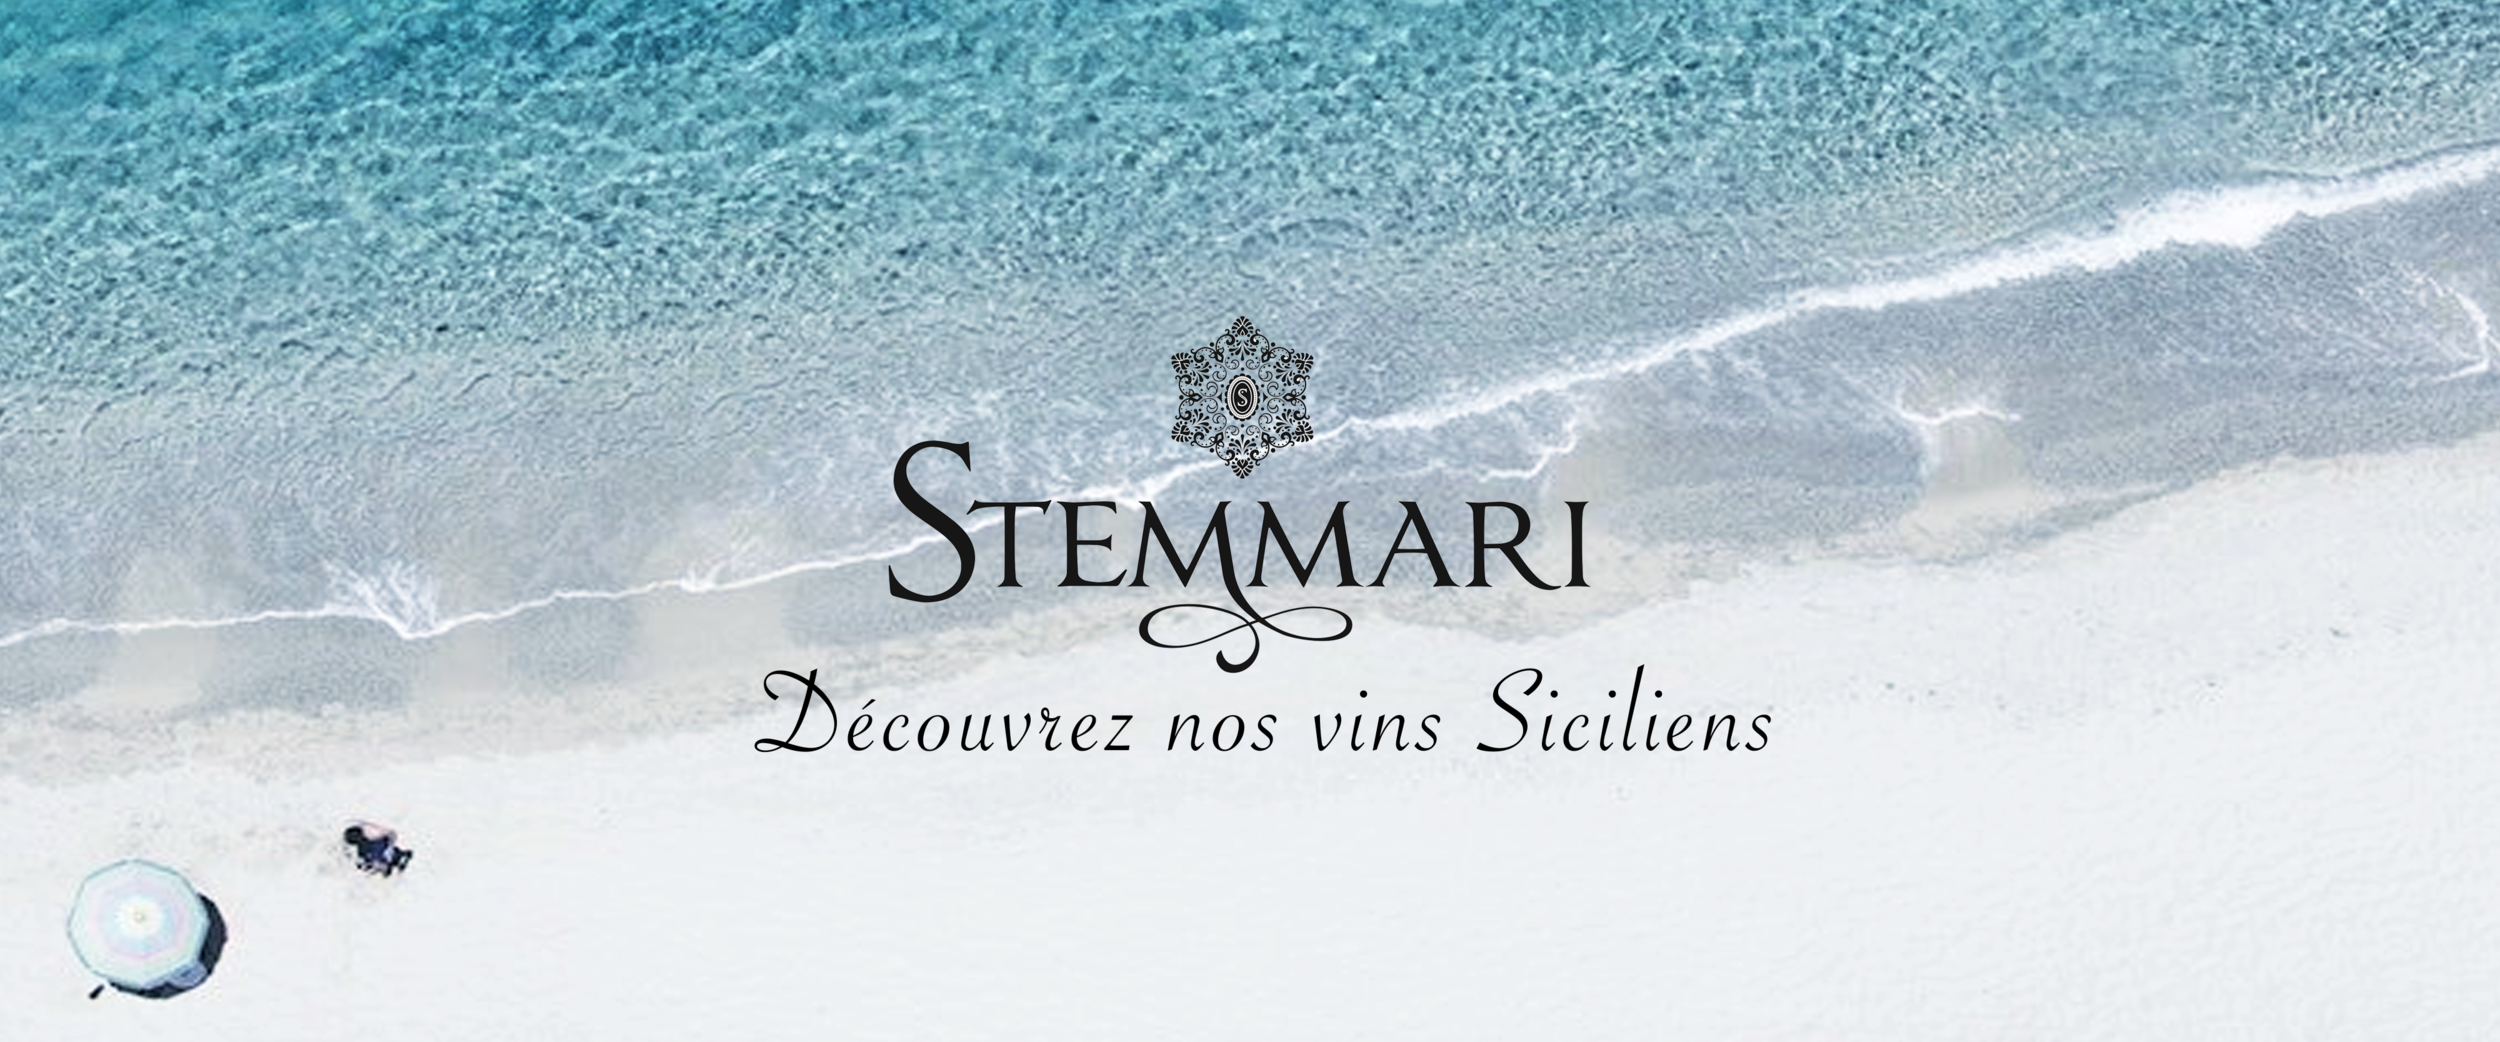 Stemmari